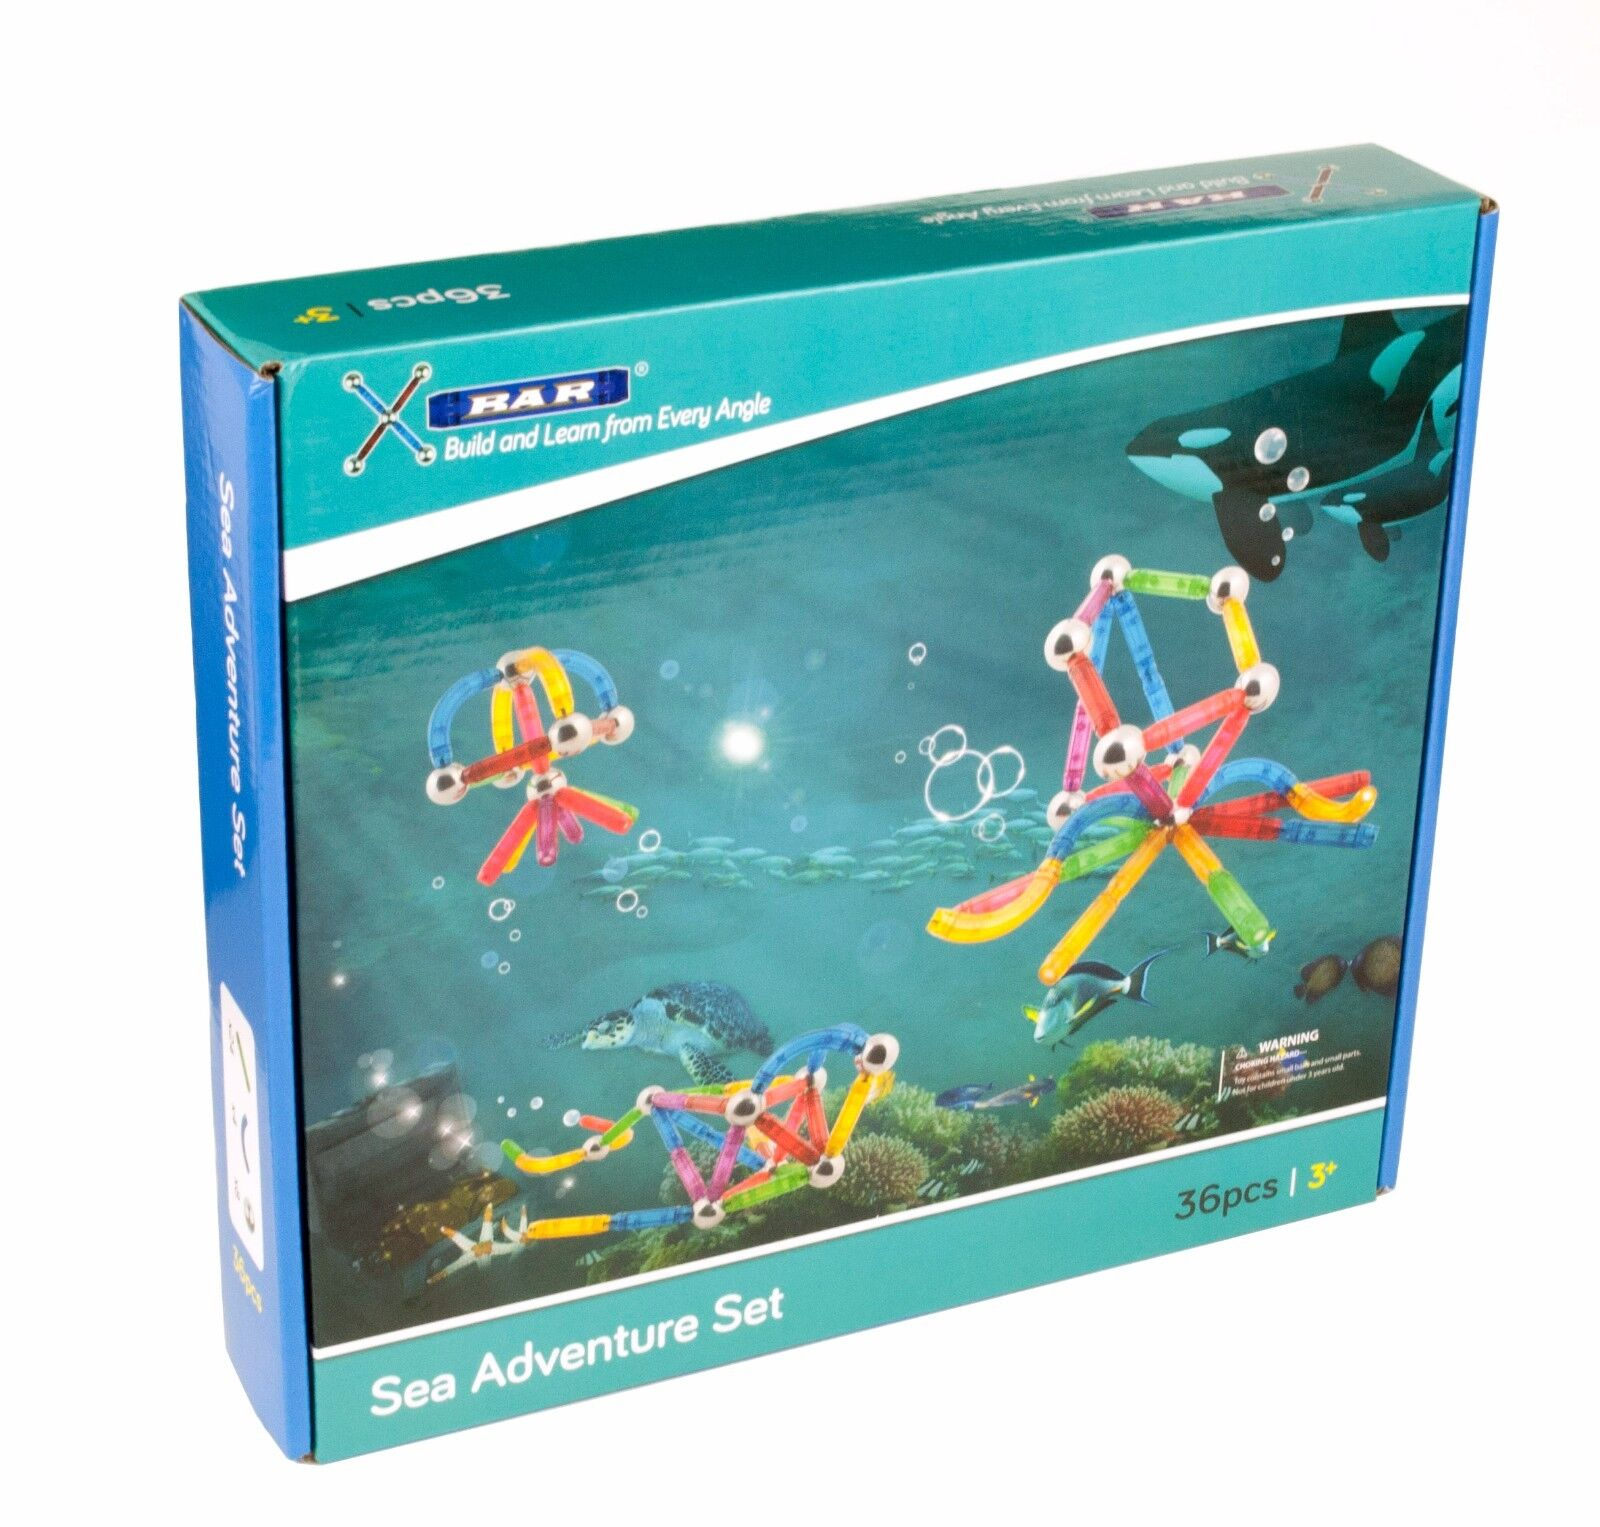 X-Bar Translucent Magnetic Bars and Steel Spheres, 36 Piece Piece 36 Sea Adventure Set dab5e9